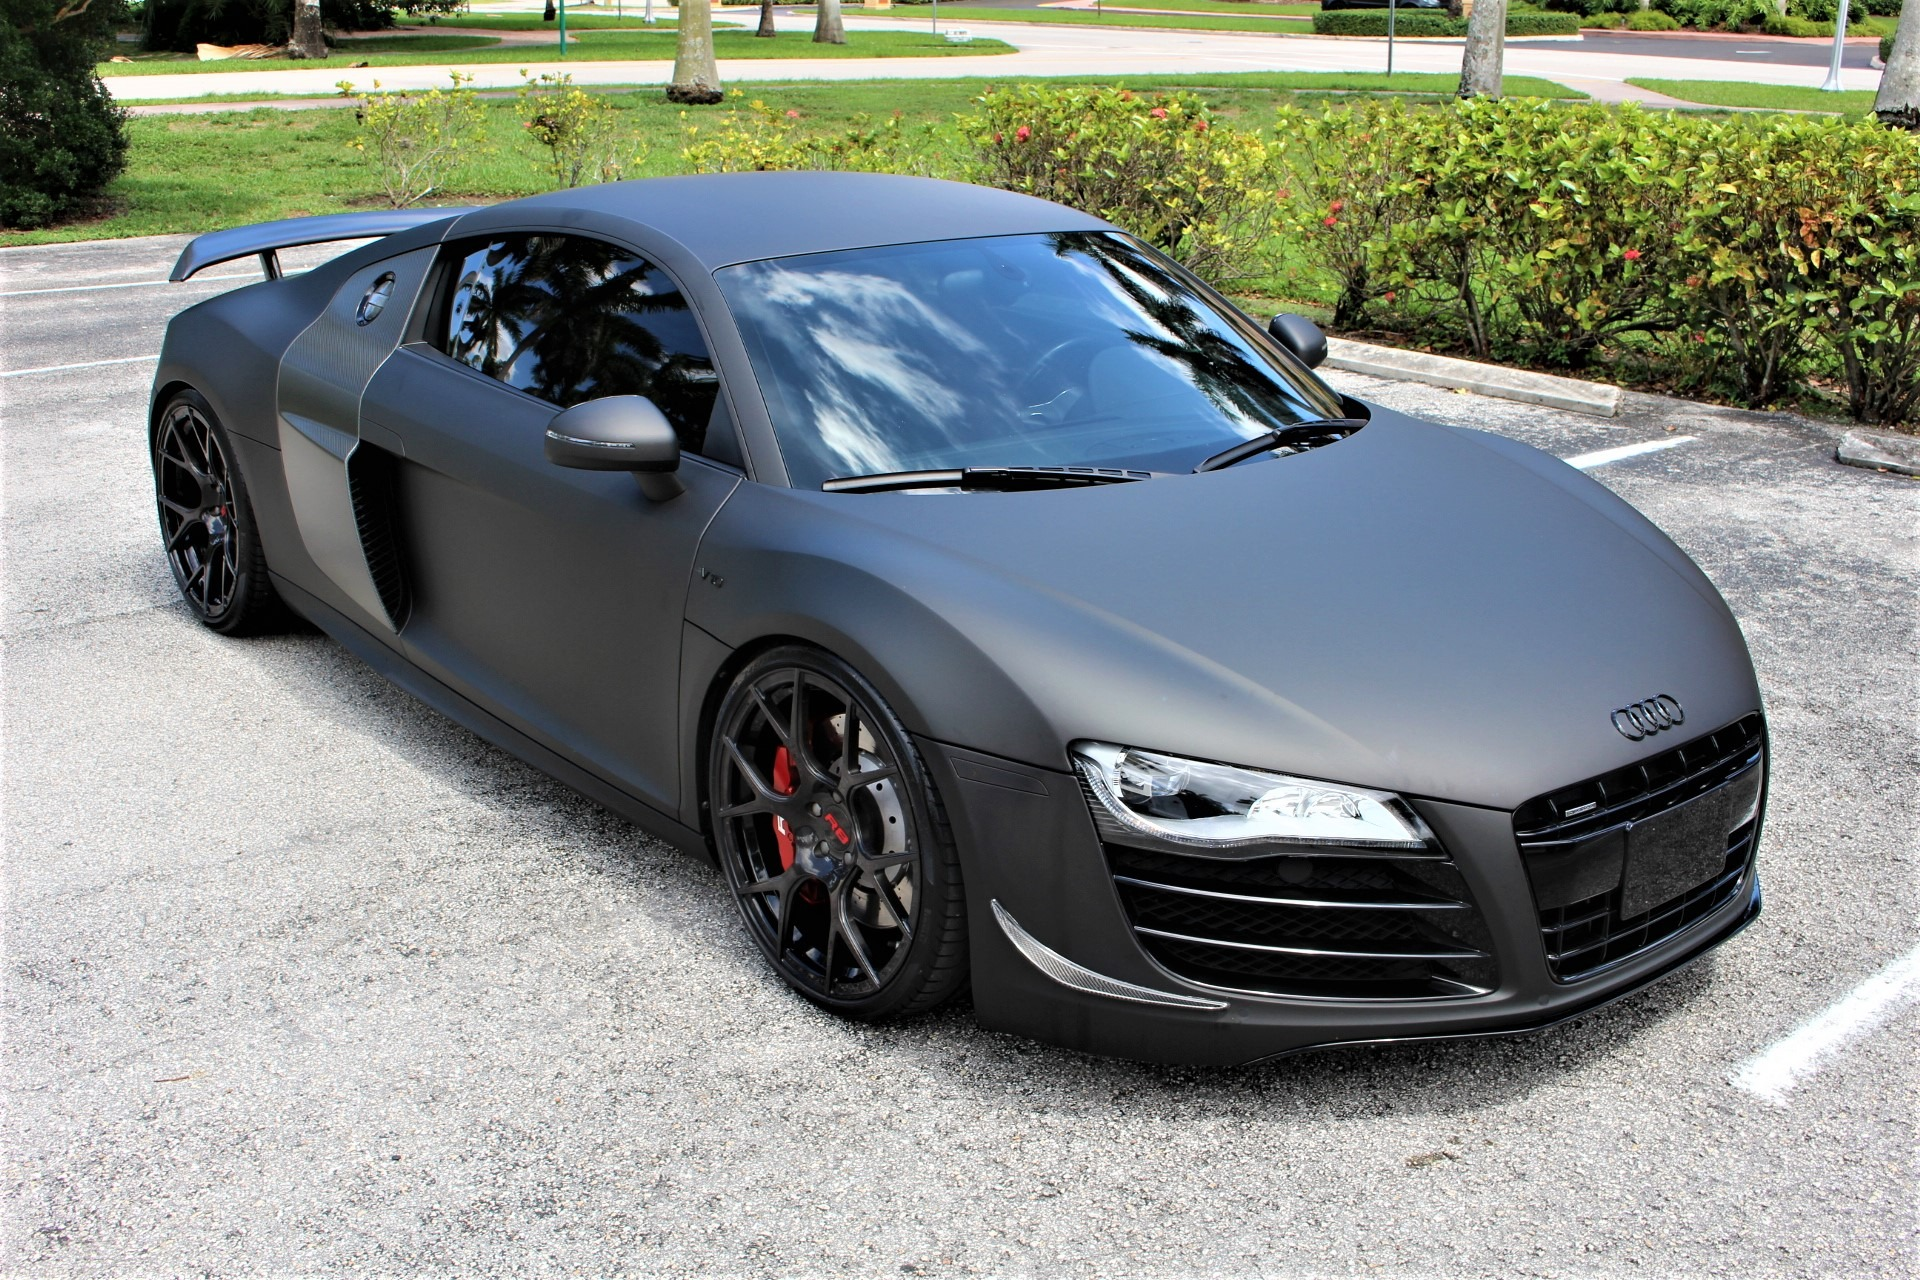 Used 2012 Audi R8 5.2 quattro for sale Sold at The Gables Sports Cars in Miami FL 33146 3